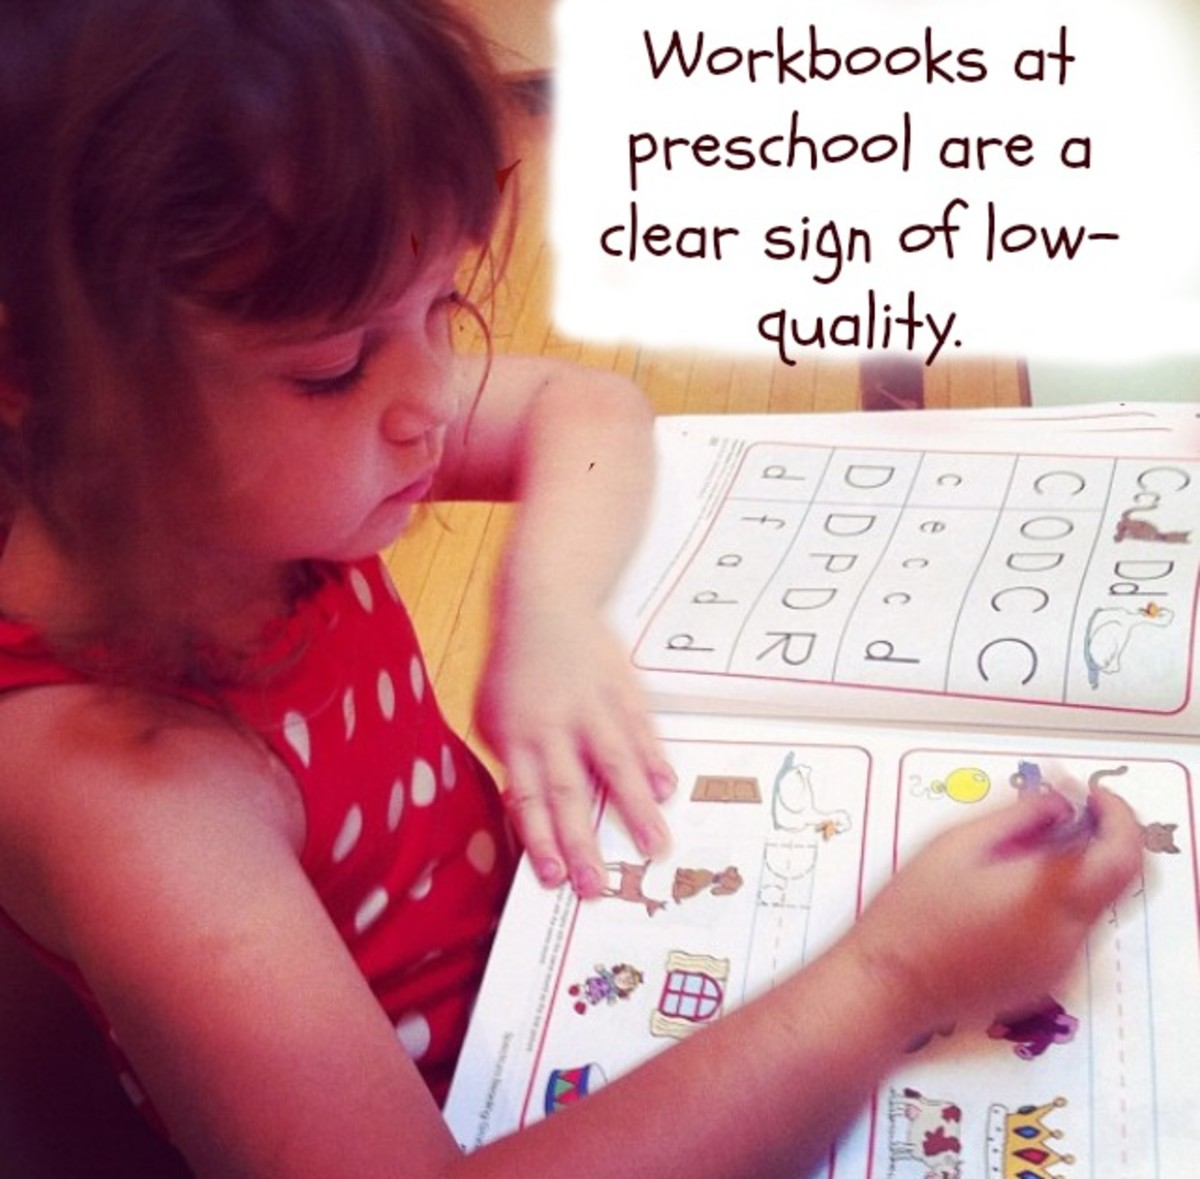 50 Features Of A High Quality Preschool That Every Parent